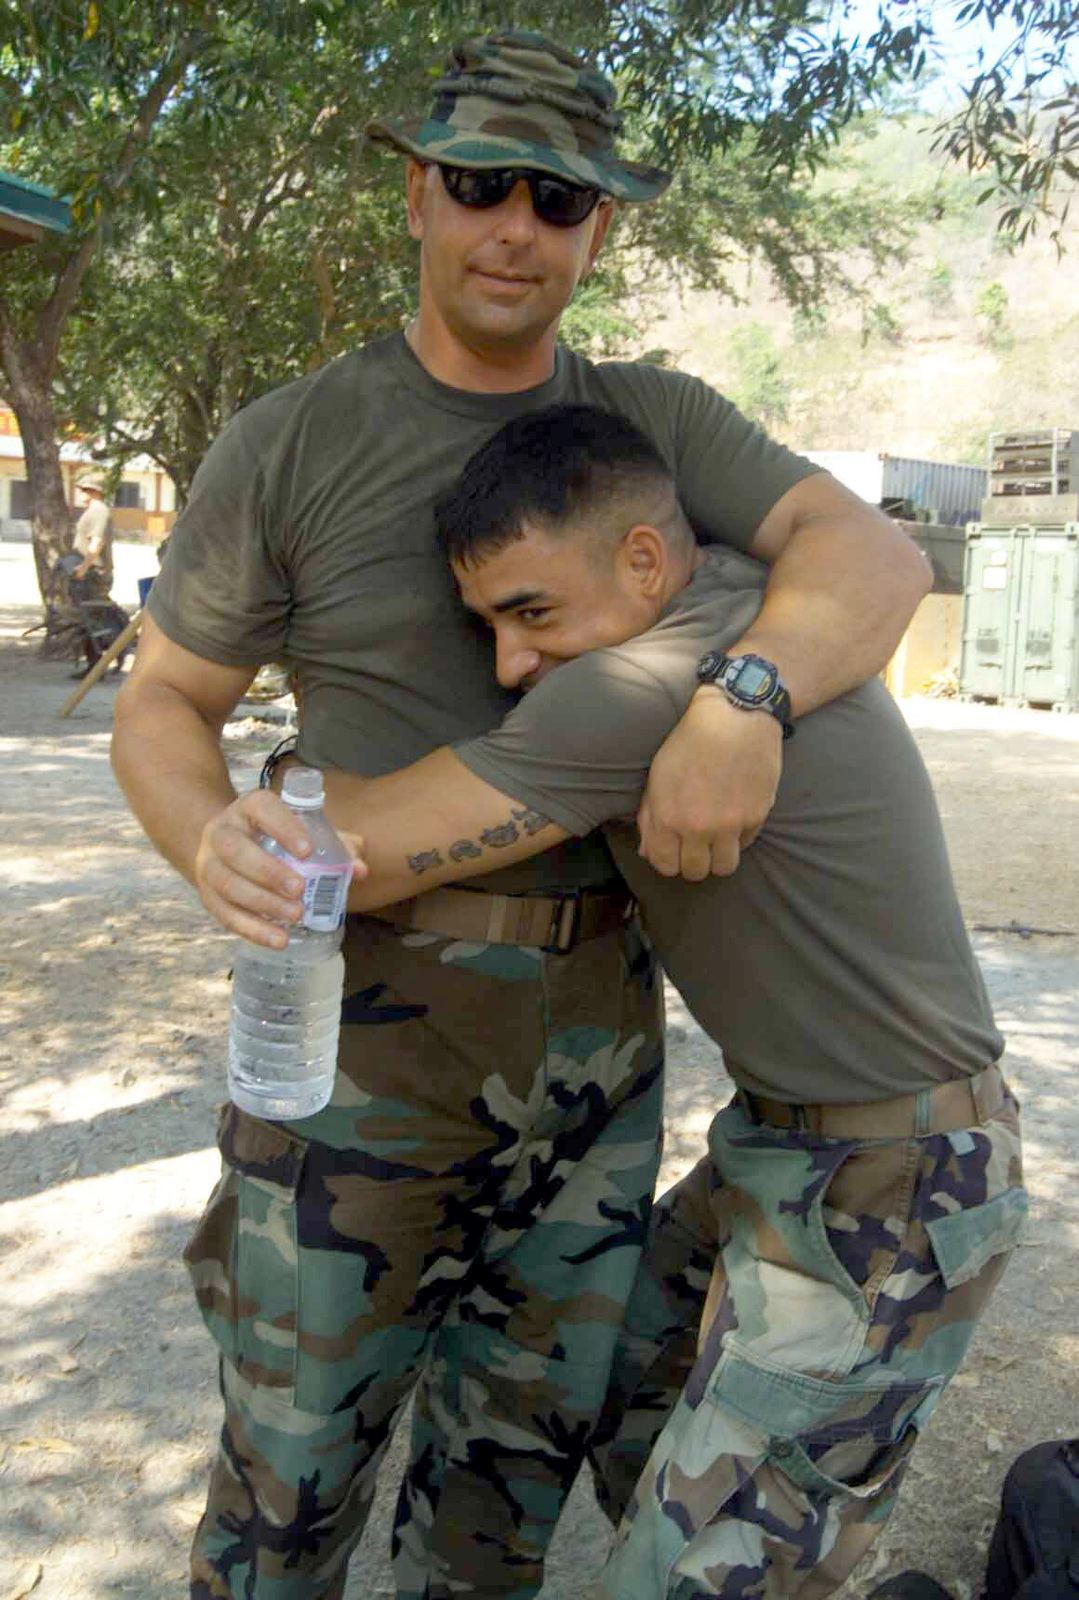 US Marine Corps (USMC), 2nd Battalion, 7th Marines, Fox Company, First Sergeant (1SGT) M. M. Geletko and Corporal (CPL) Nicholas J. Medina, both with the 2nd Battalion, 7th Marines, share a father-son moment during Exercise BALIKATAN 2003